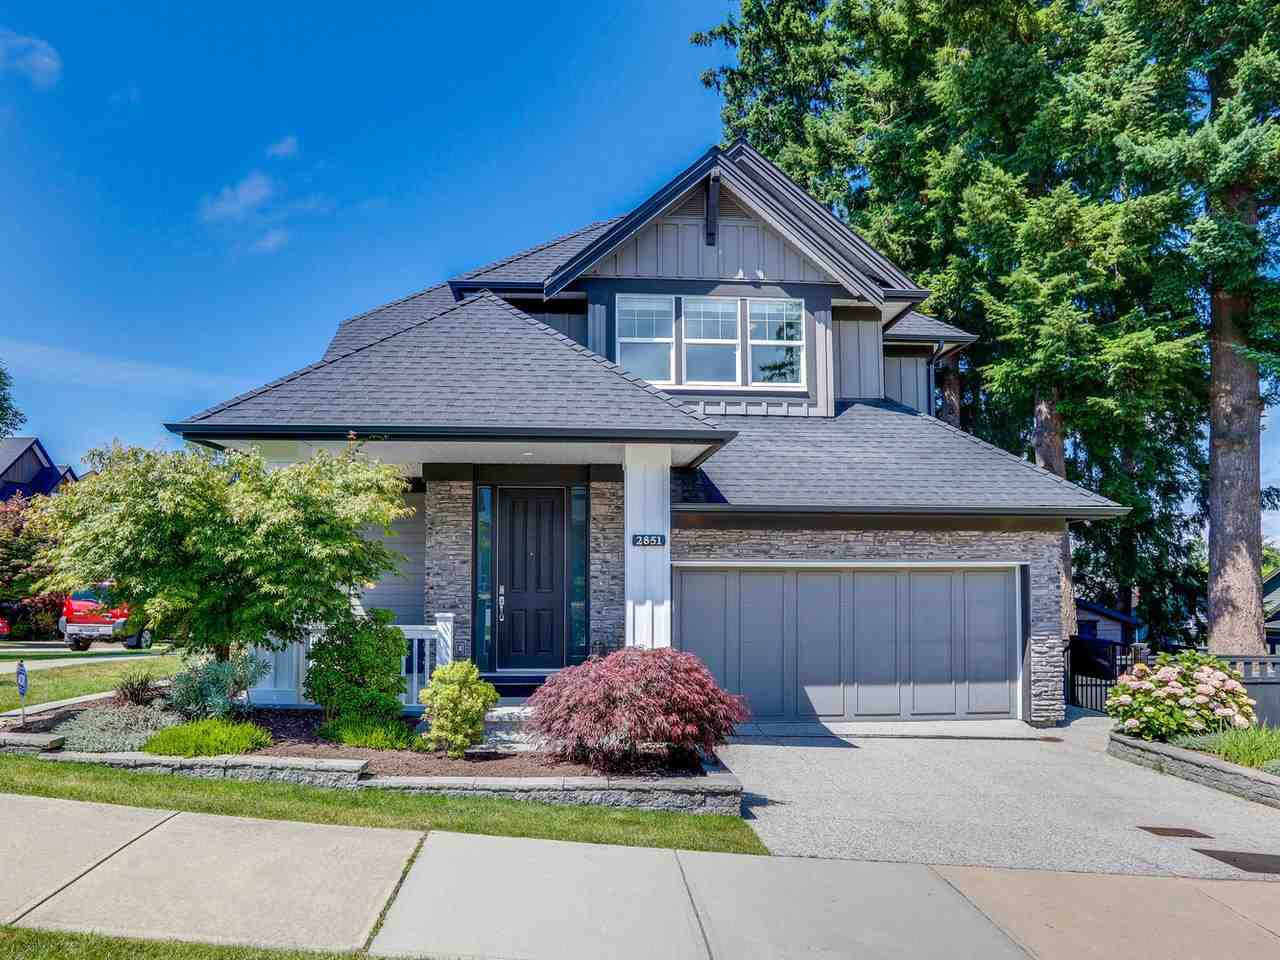 2851 161 STREET - Grandview Surrey House/Single Family for sale, 3 Bedrooms (R2474736) - #1